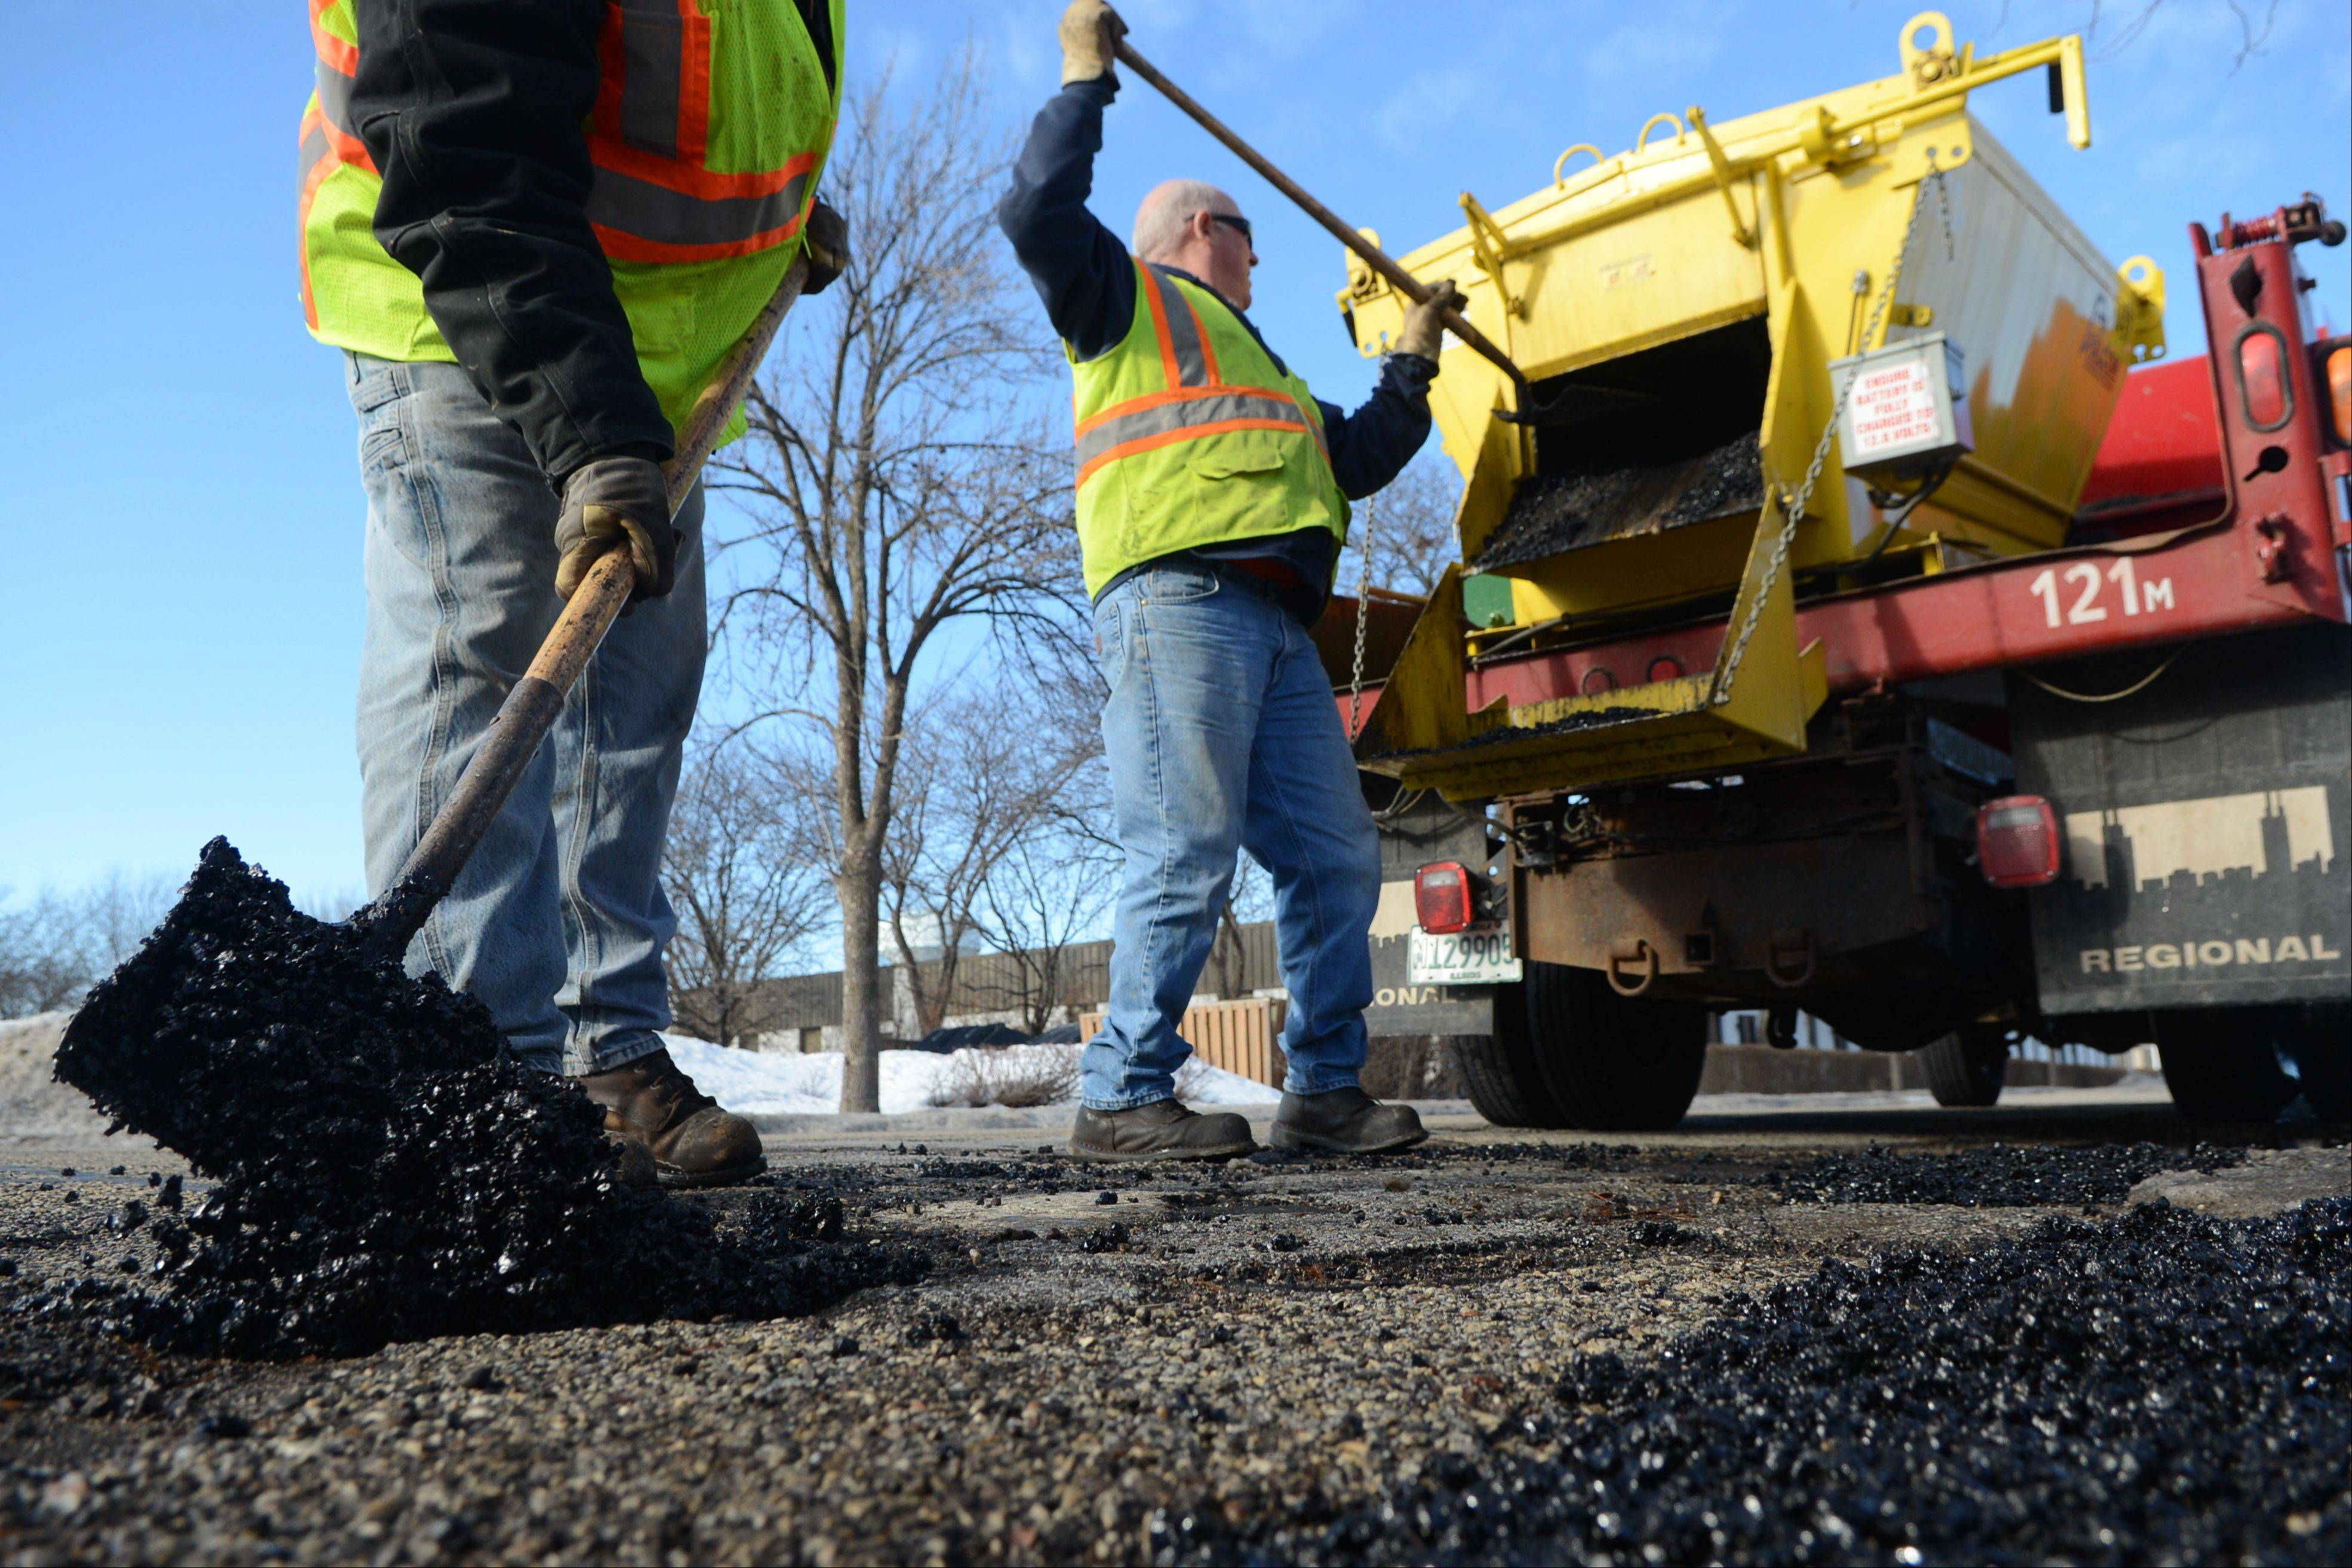 Arlington Heights public works employees Terry Koeppl, left, and Ken Tullar fill potholes on Tonne Road with asphalt Monday afternoon.